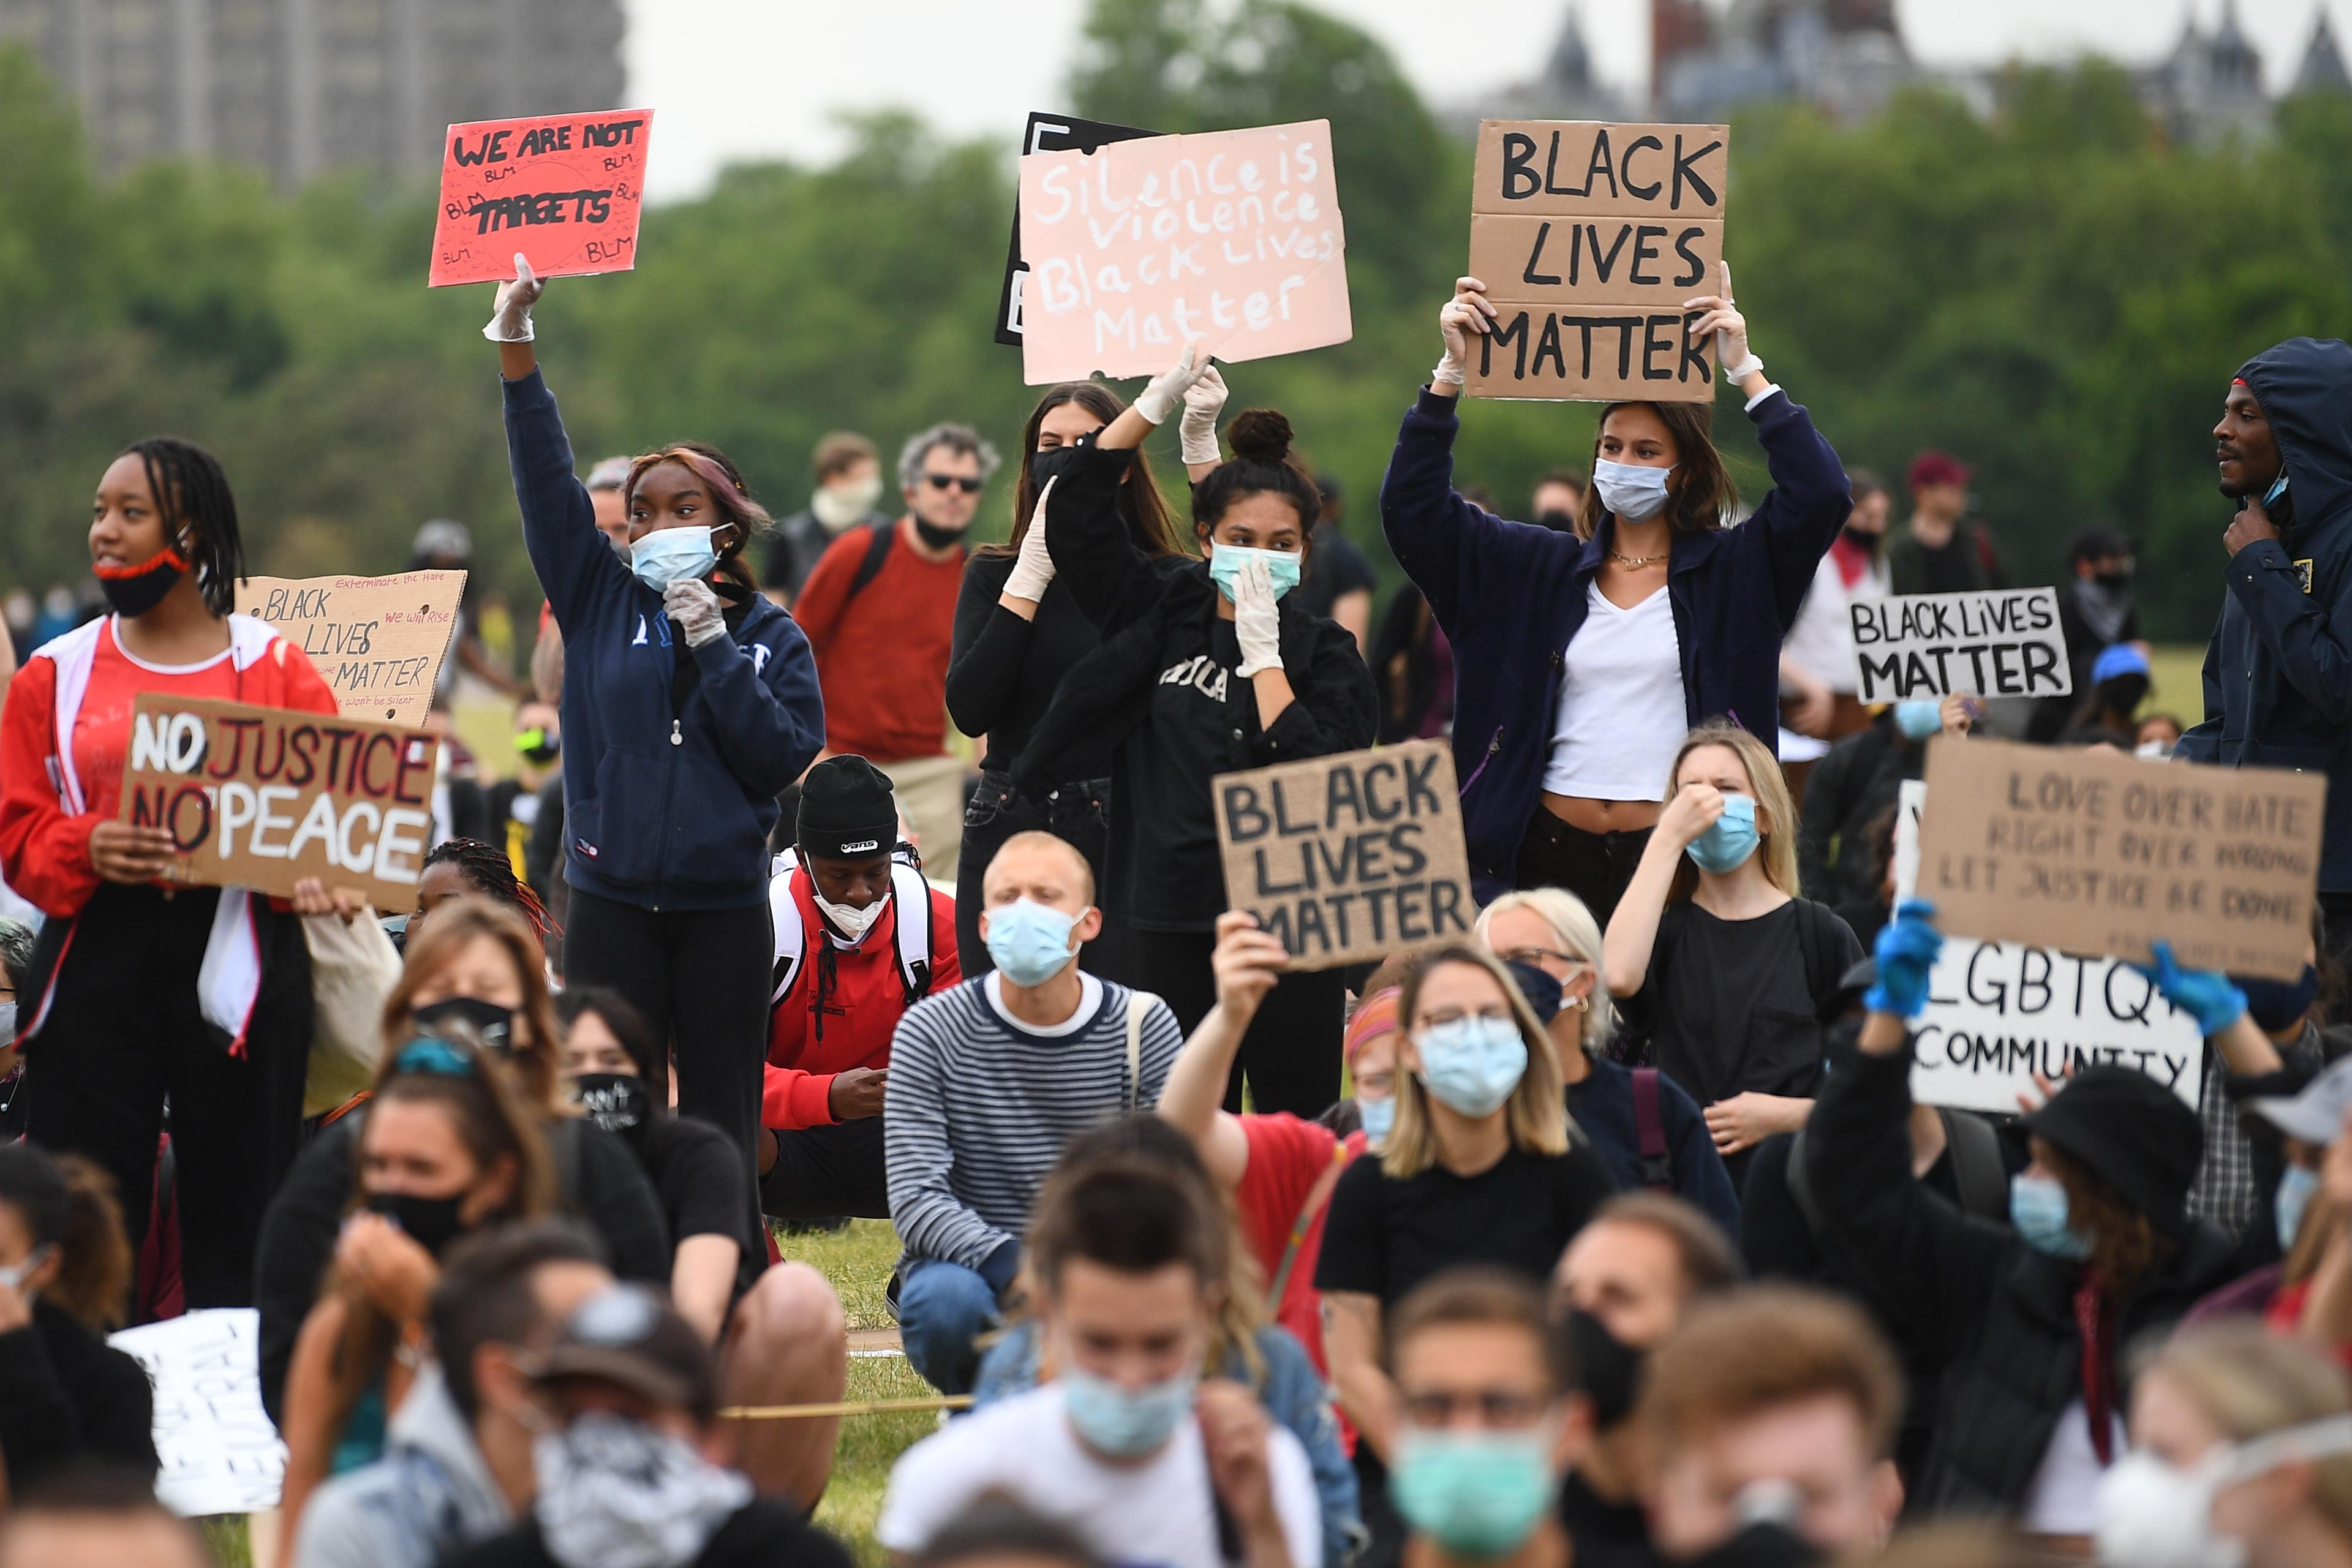 People participate in a Black Lives Matter protest rally in Hyde Park, London, in memory of George Floyd who was killed on May 25 while in police custody in the US city of Minneapolis.